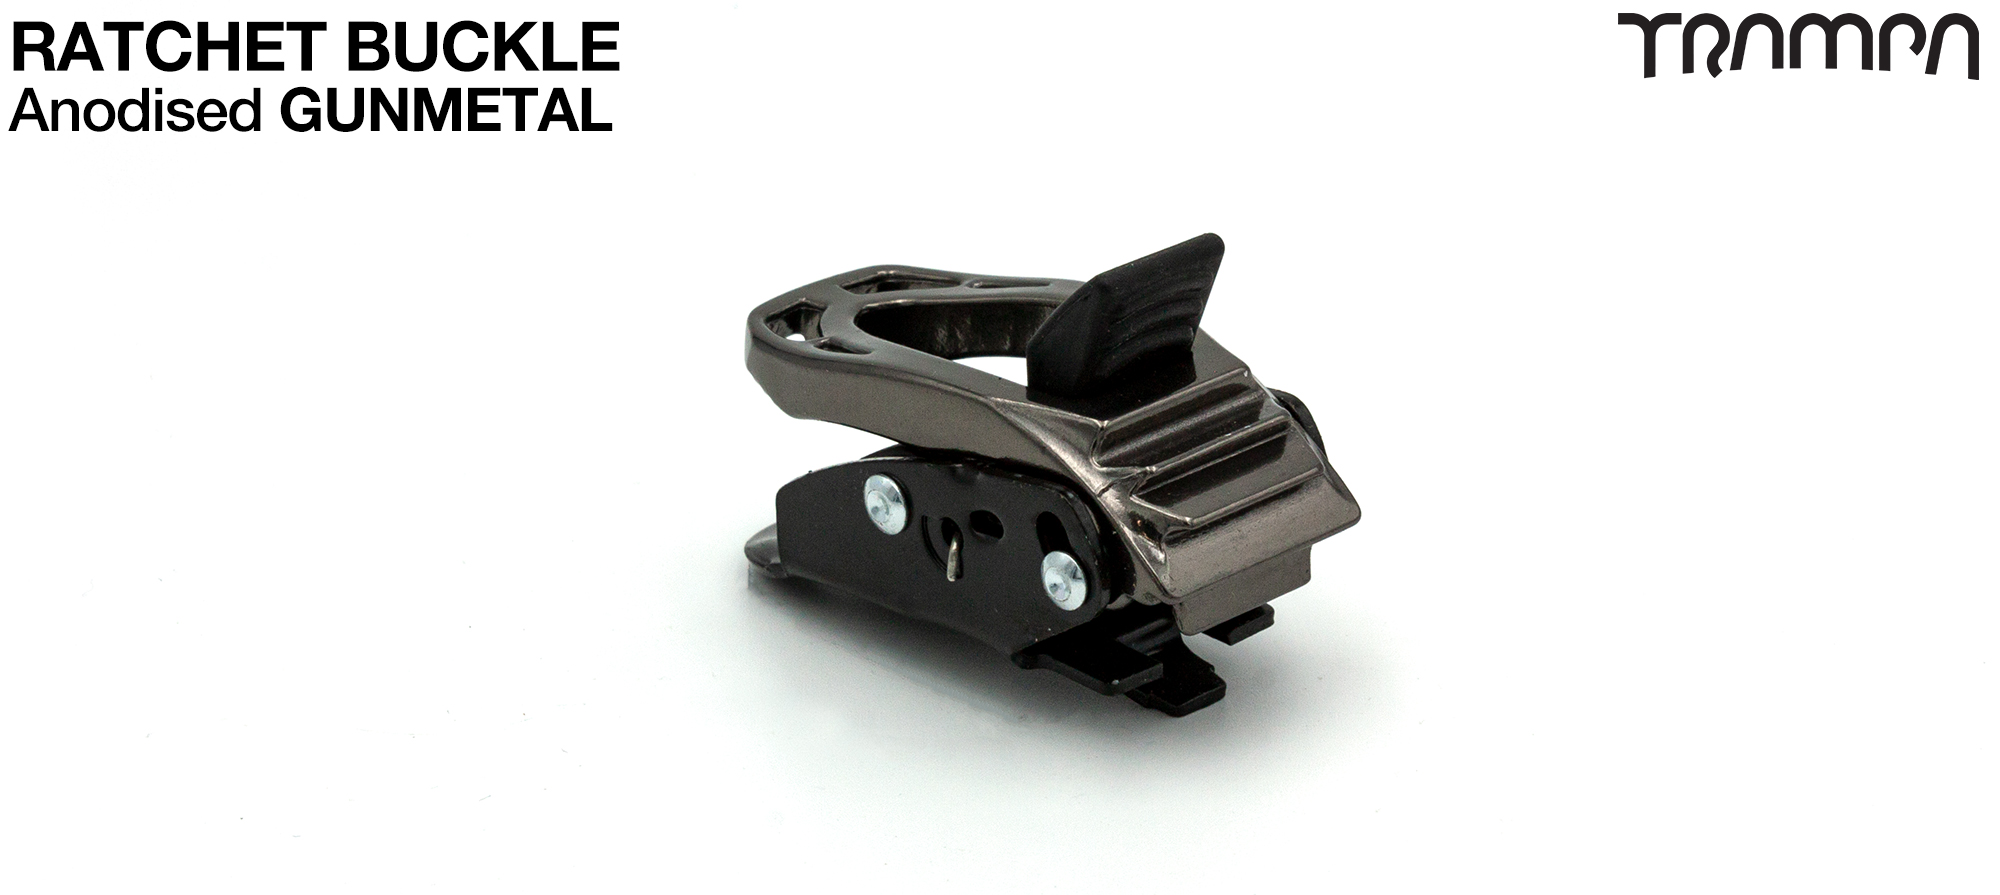 GUNMETAL Ratchet Buckle